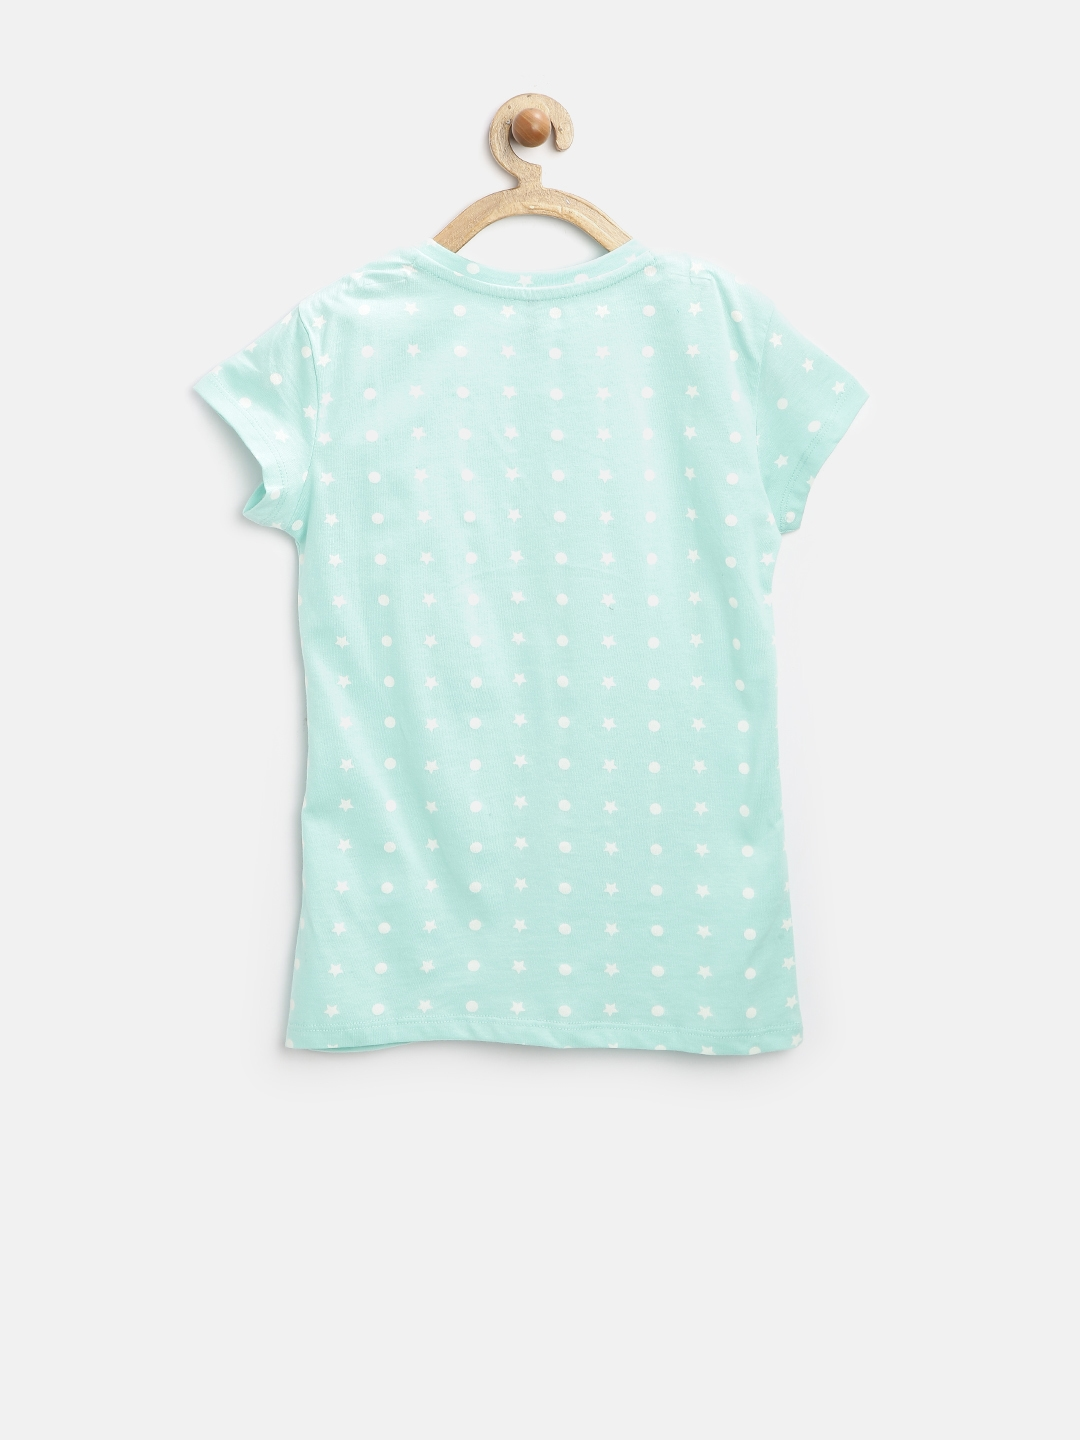 be932f0394a Buy United Colors Of Benetton Girls Mint Green Printed T Shirt ...